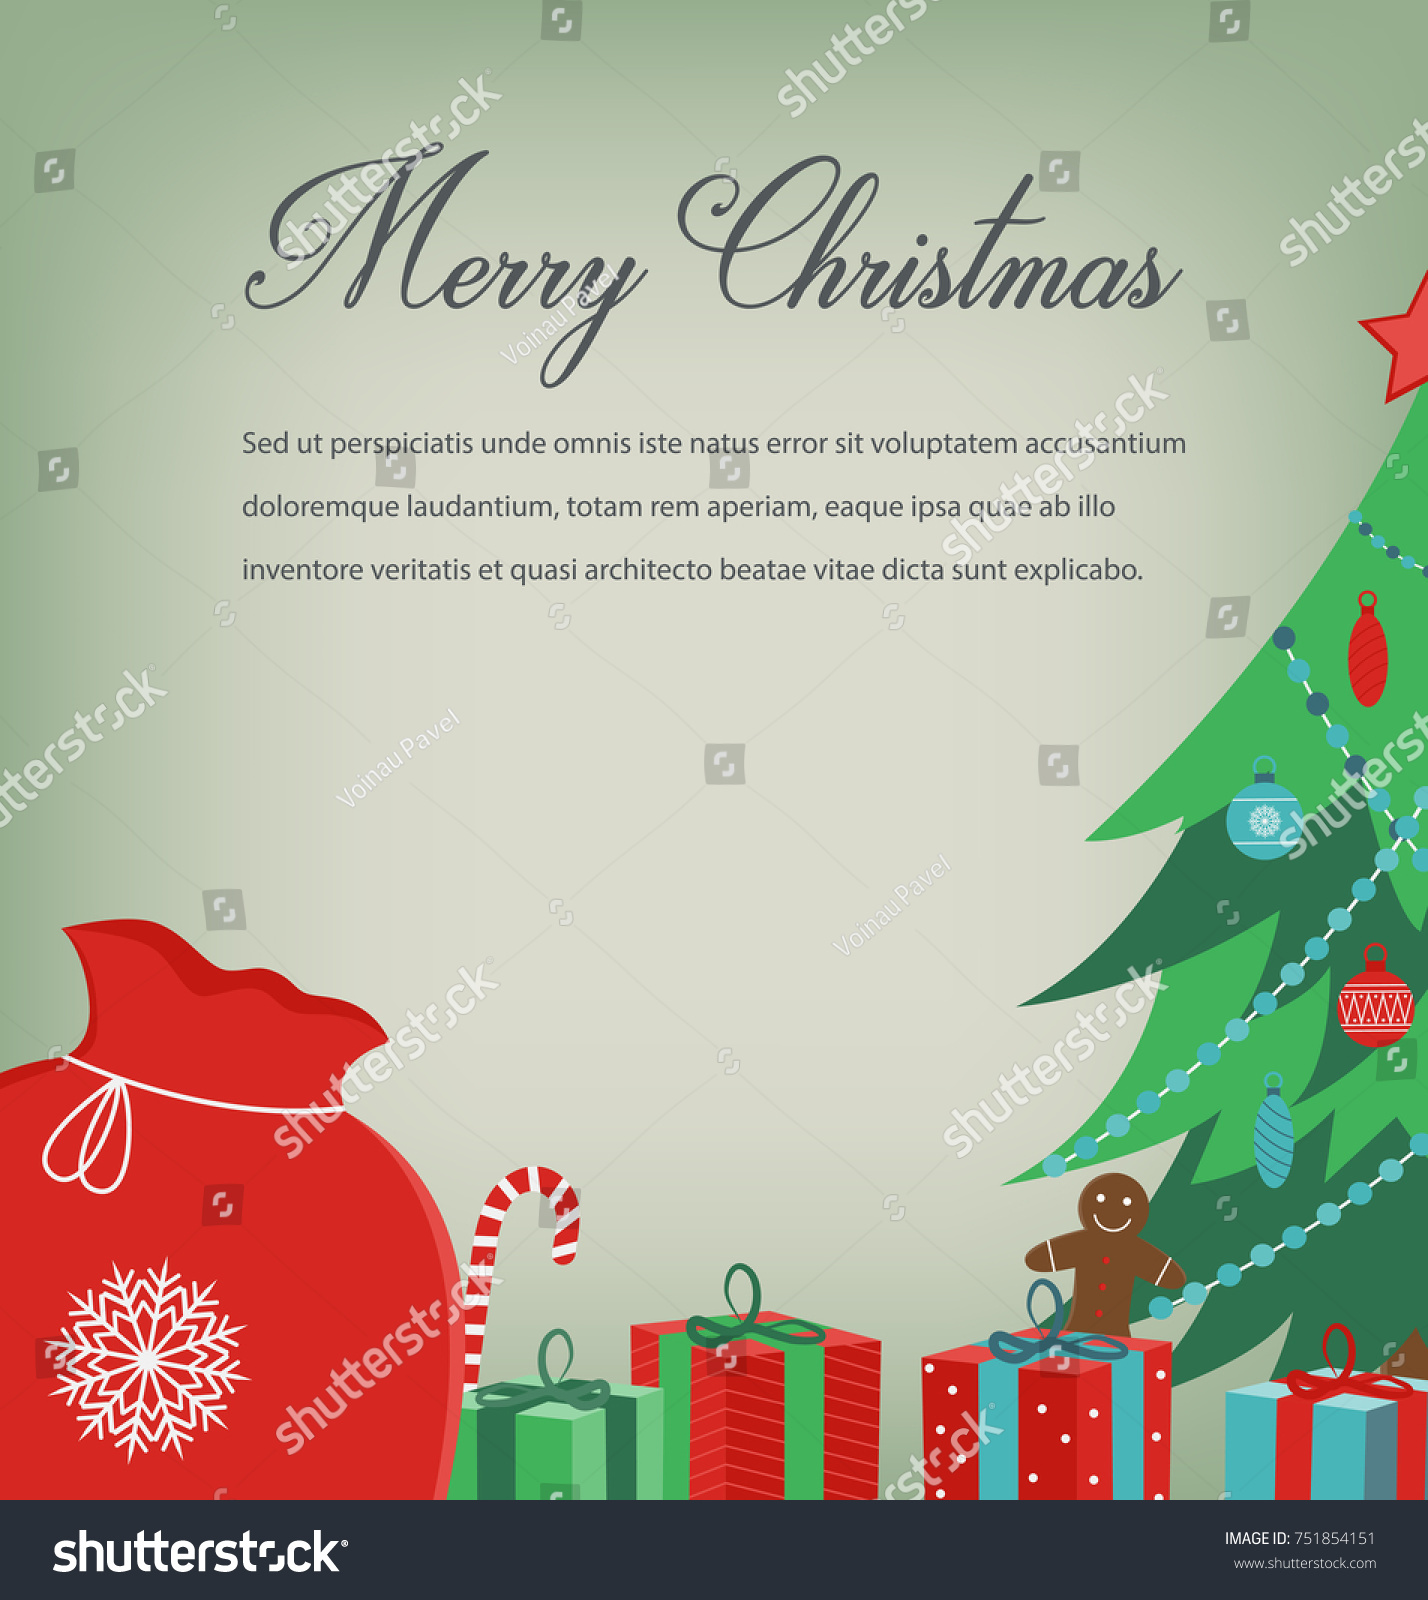 Christmas Greeting Card Merry Christmas Wishes Stock Photo Photo